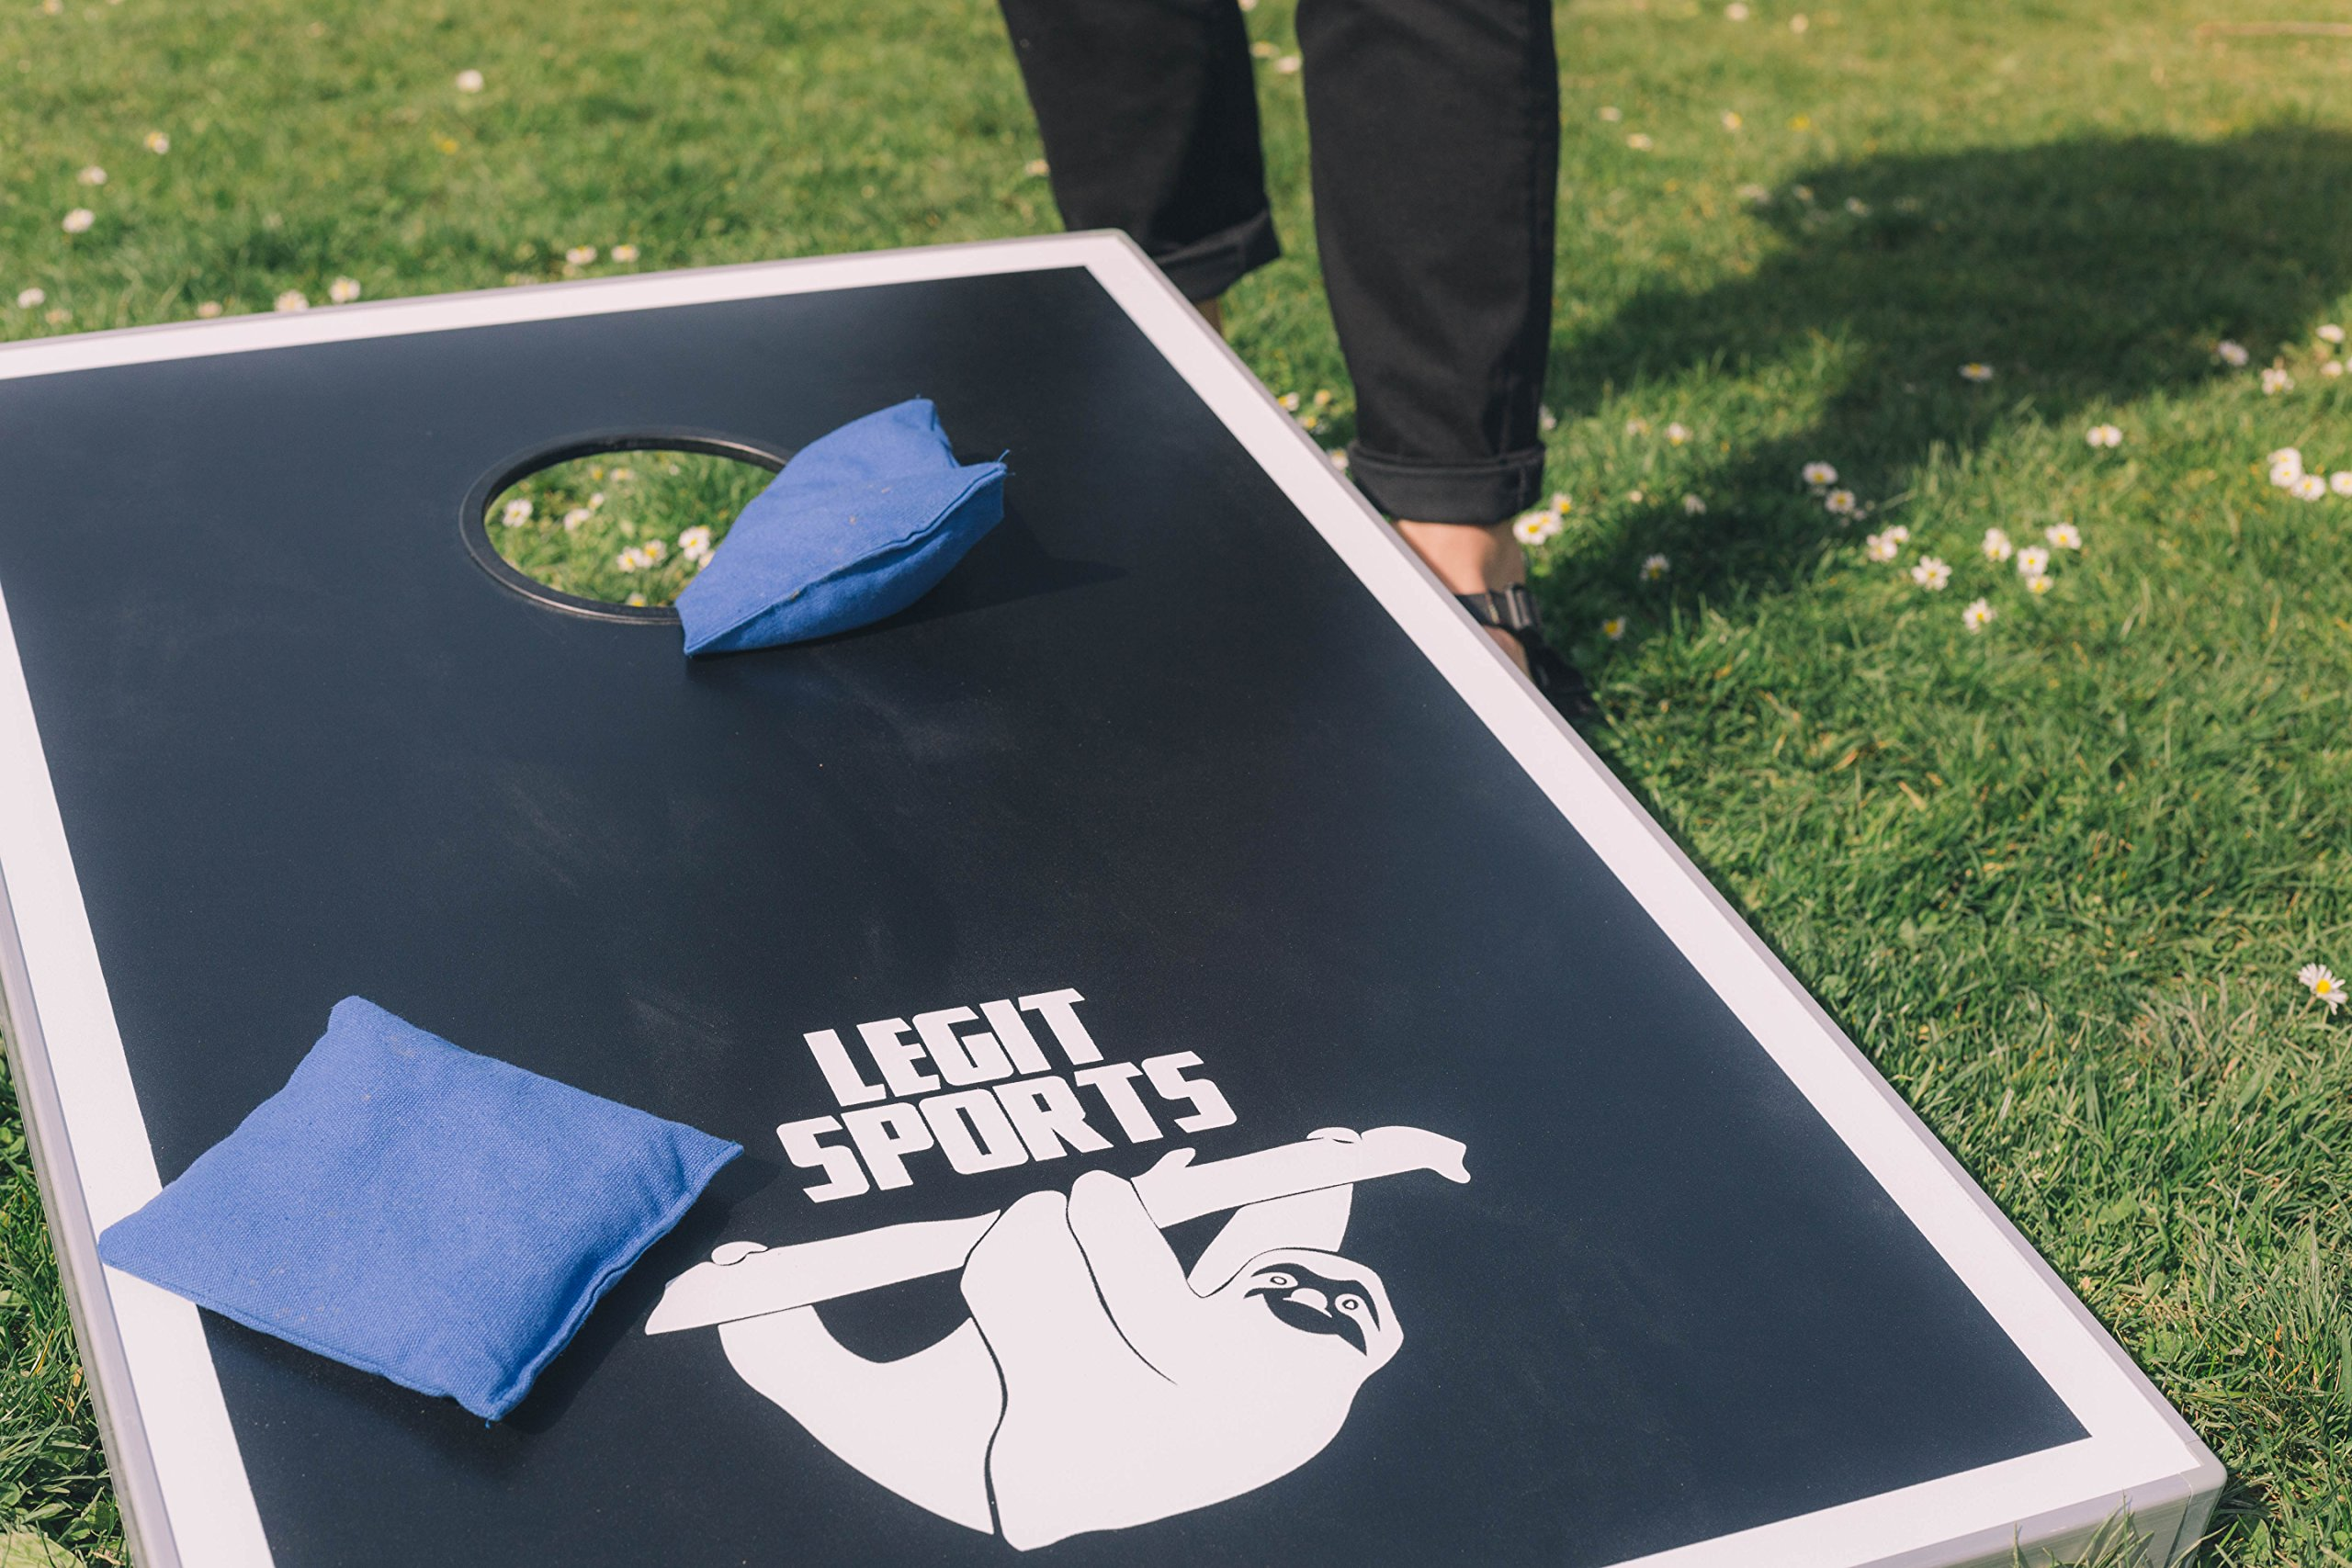 Cornhole Boards with Aluminum Frame by Legit Sports | Bean Bag Toss Corn Hole Outdoor Game with Weighted Bean Bags | Lightweight and Durable Materials | Great for Travel, Camping, Parties by Legit Camping (Image #2)